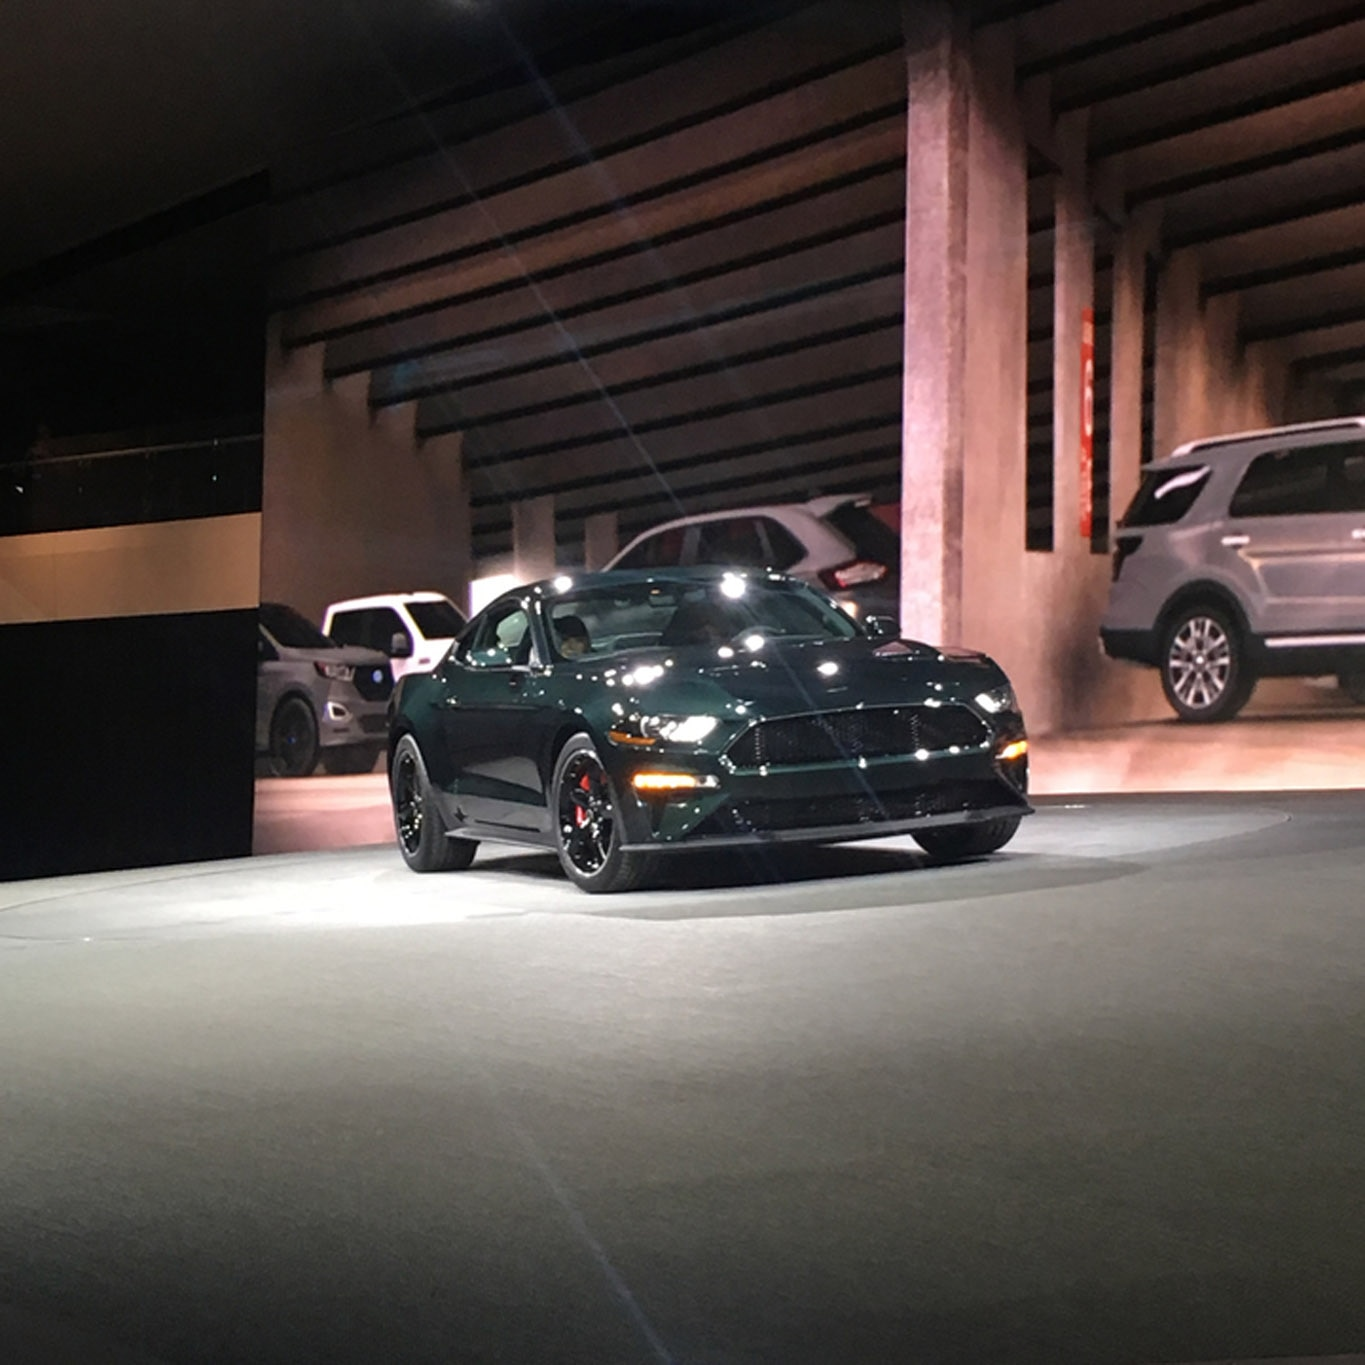 All Types mustang pictures : 2019 Ford Mustang Bullitt is Back for Film's 50th | Automobile ...